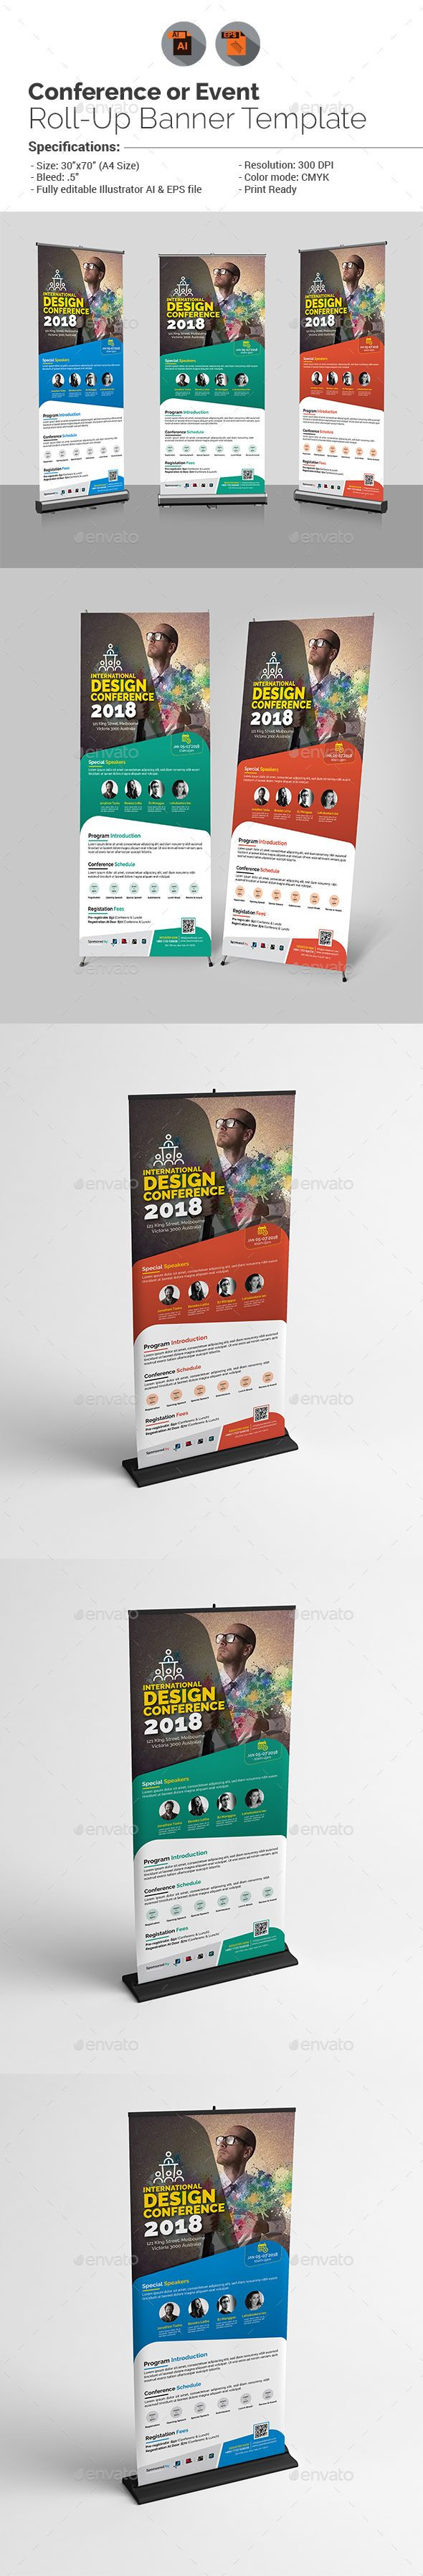 Conference or Event Roll-Up Banner Template | Banner template ...